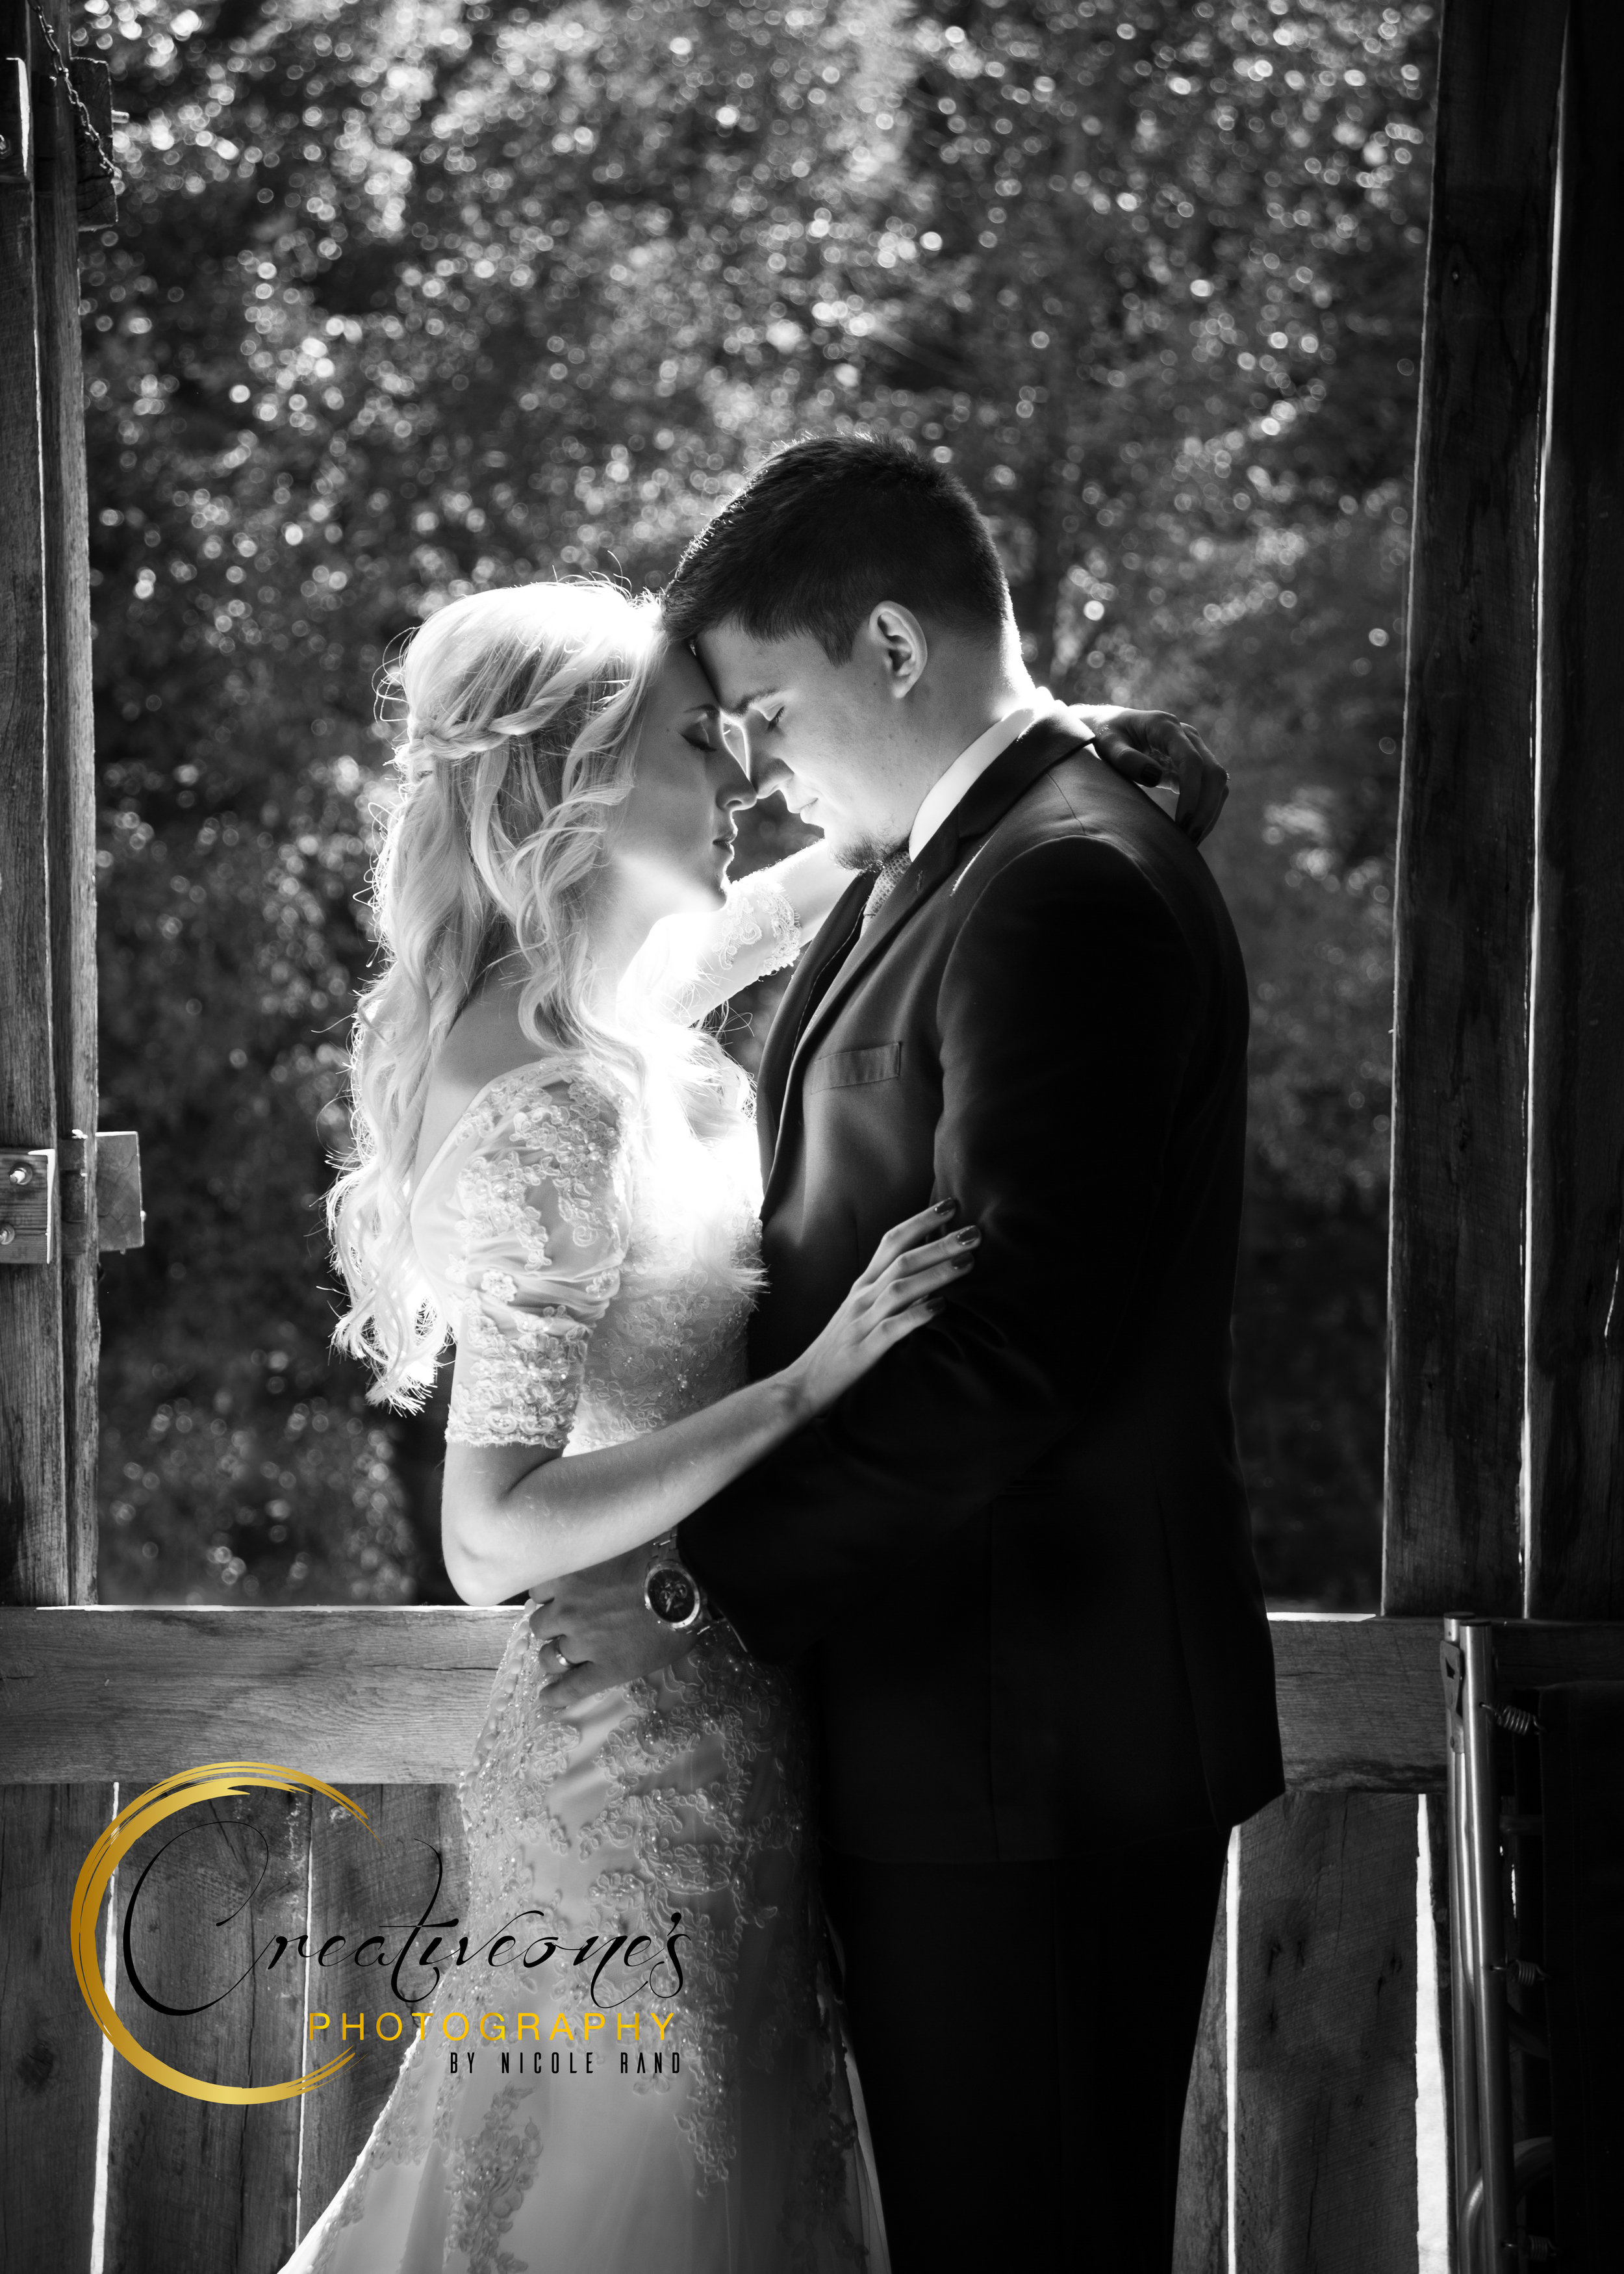 Weddings - Congratulations on your engagement! Wedding package start at $2500.For more information on wedding packages offered please feel free to call me at 207-333-9844. I would love an opportunity to sit and talk with you about your wedding needs.